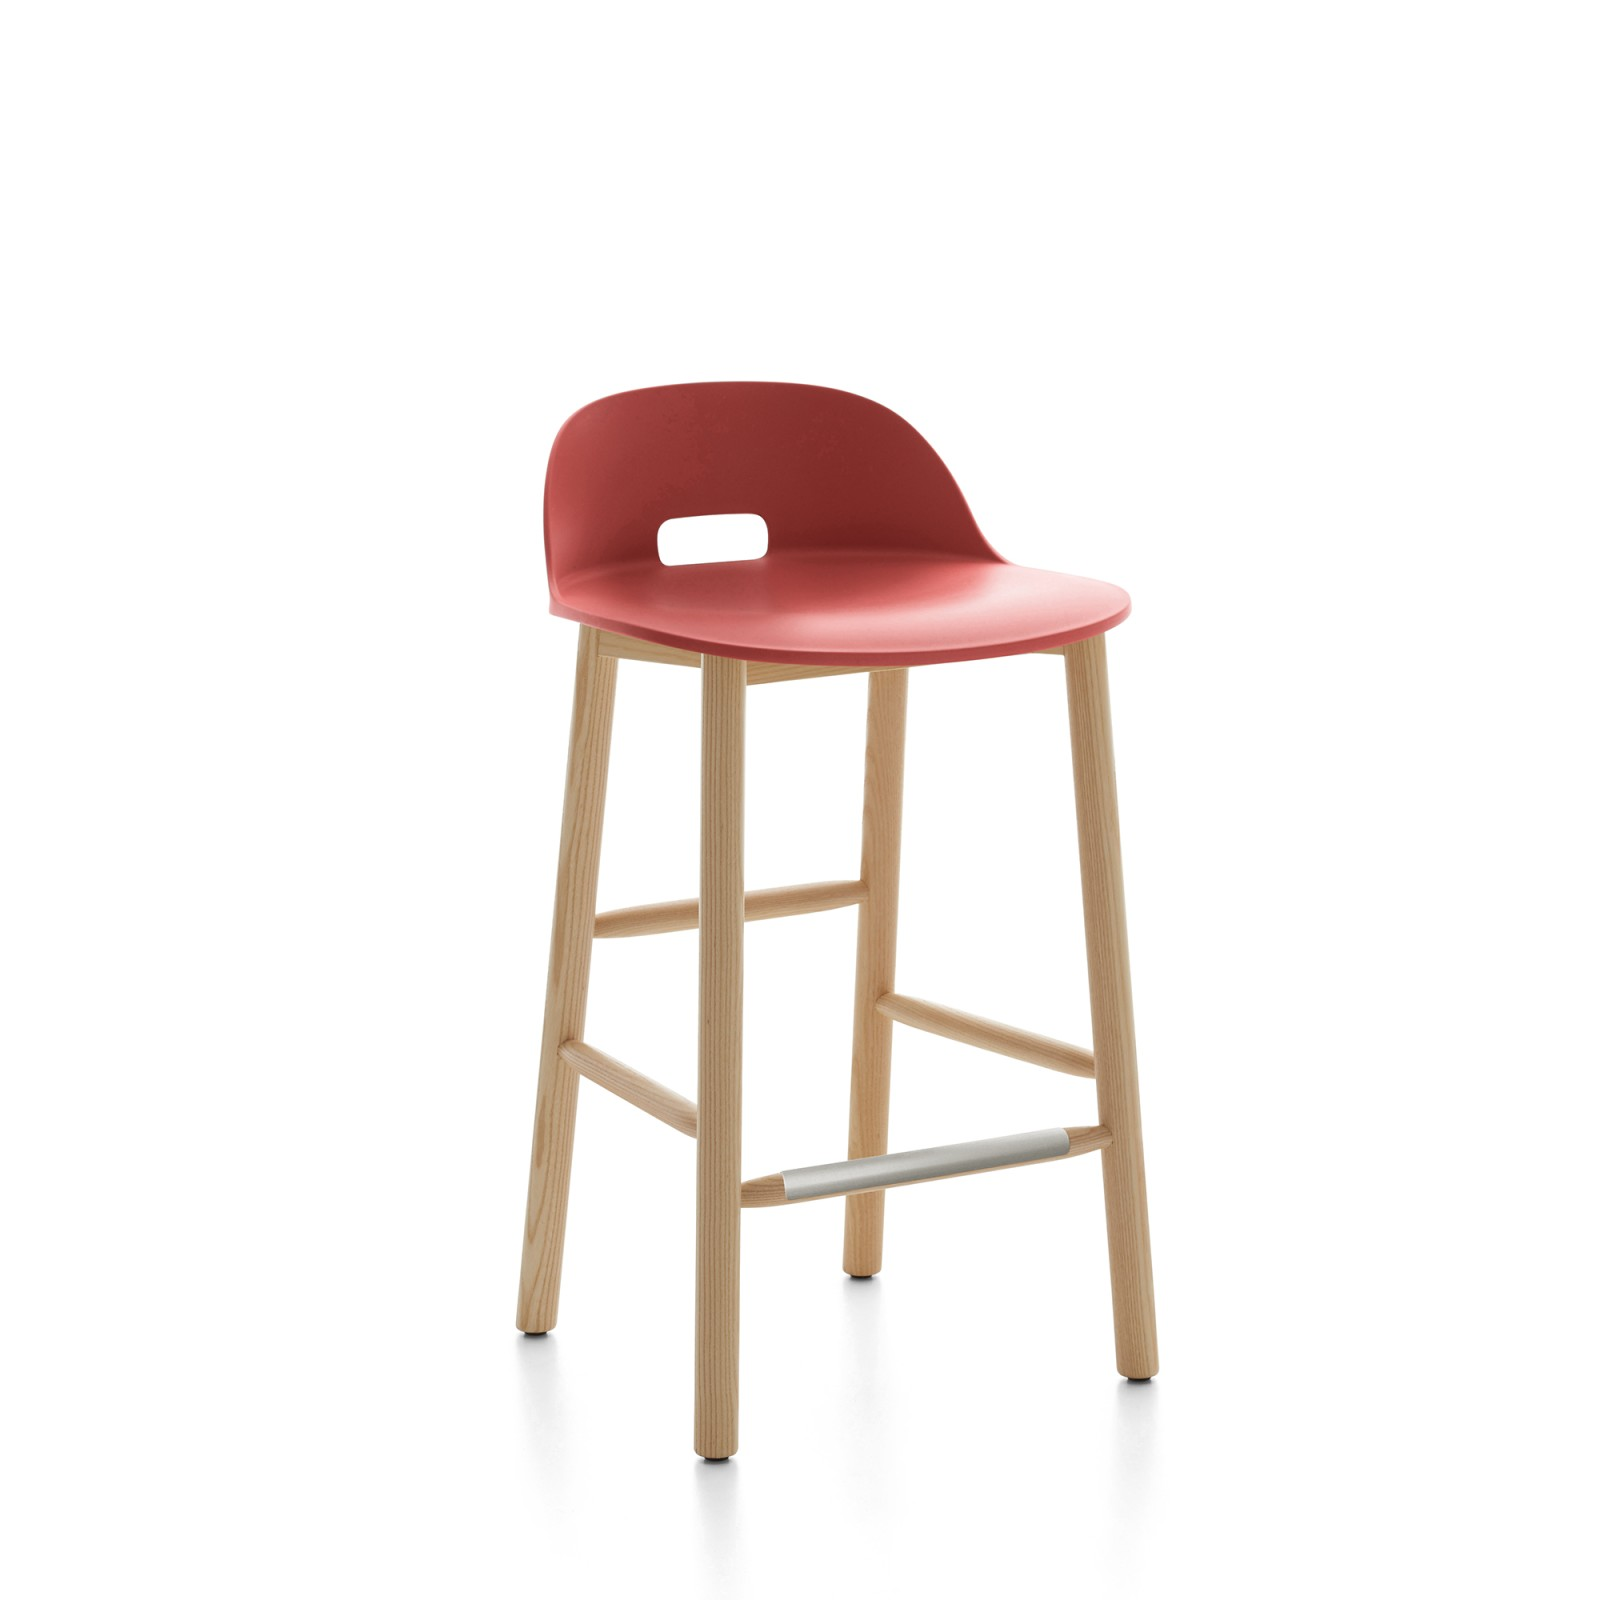 Alfi Counter Stool, Low Back Red, Natural Light Ash Frame